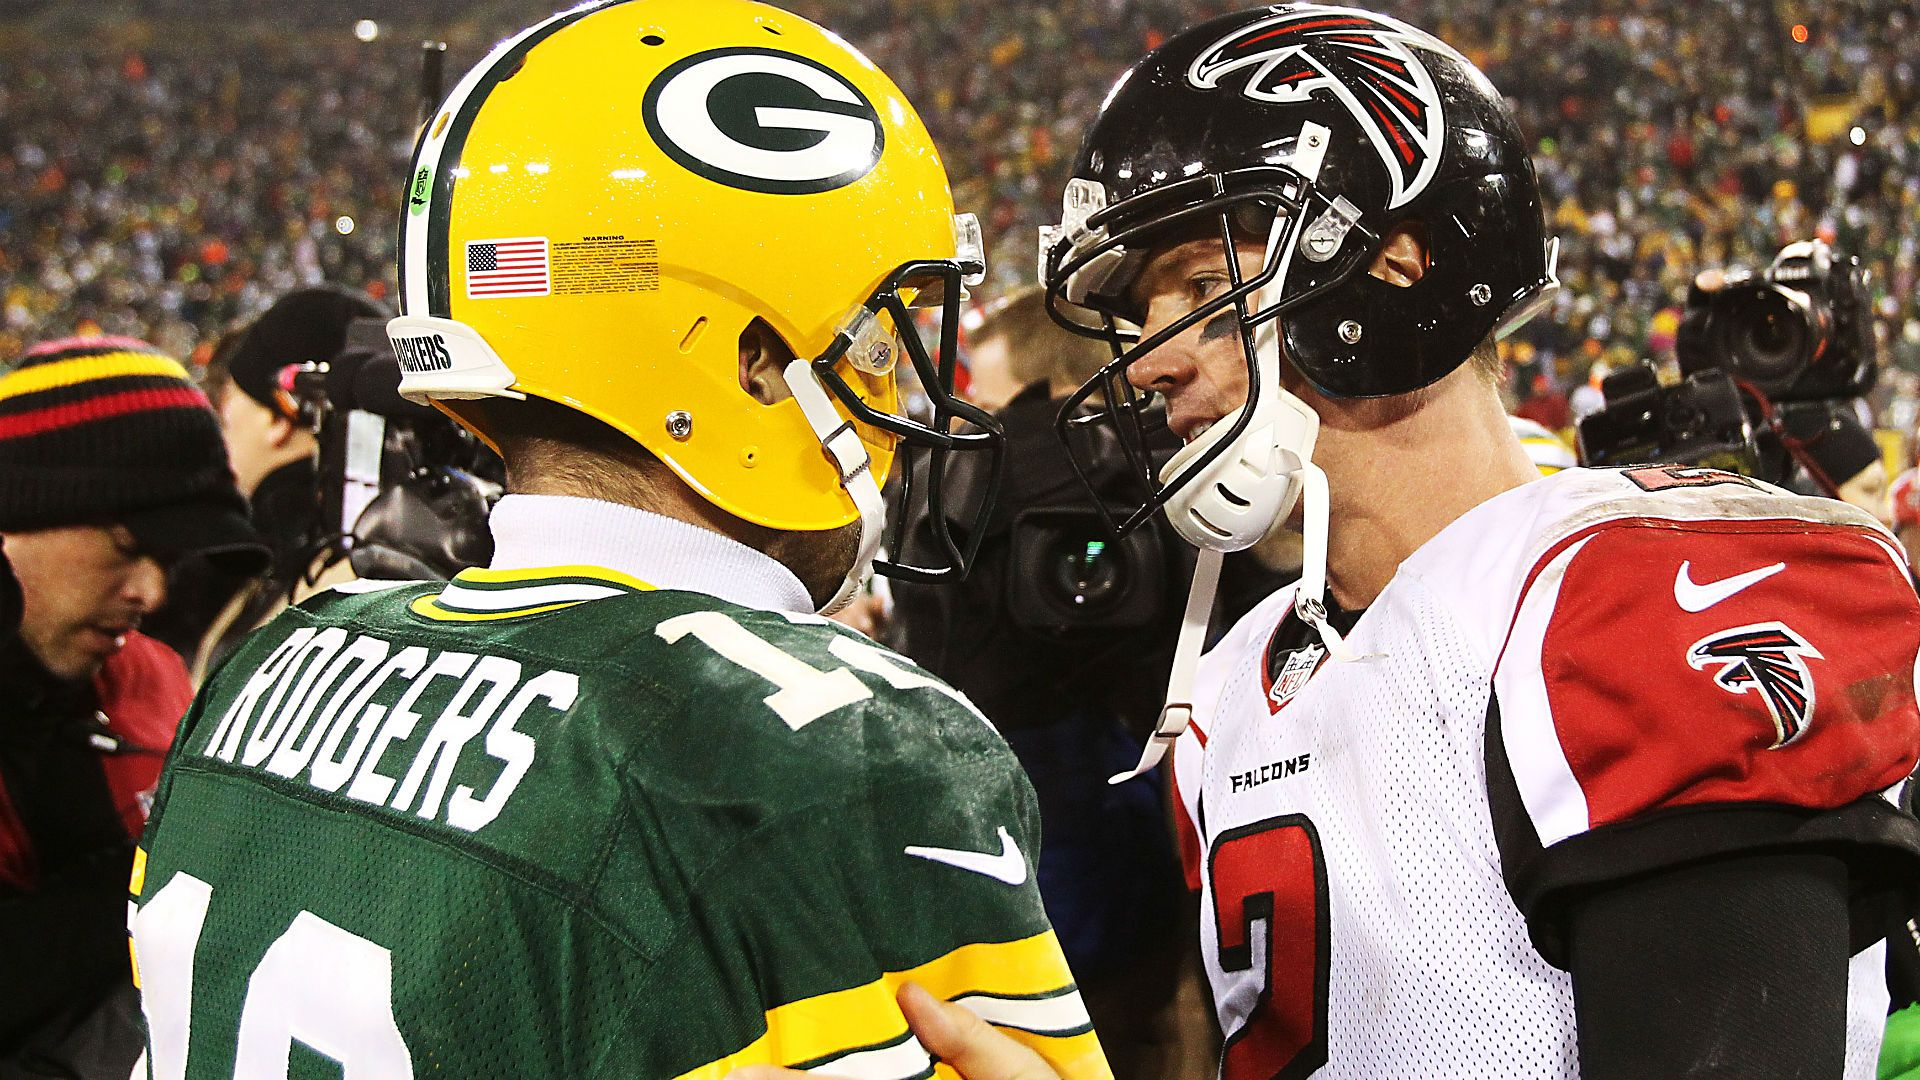 Aaron Rodgers Mvp Wallpapers Widescreen Desktop Wallpaper Box Atlanta Falcons Football Nfl Football Live Packers